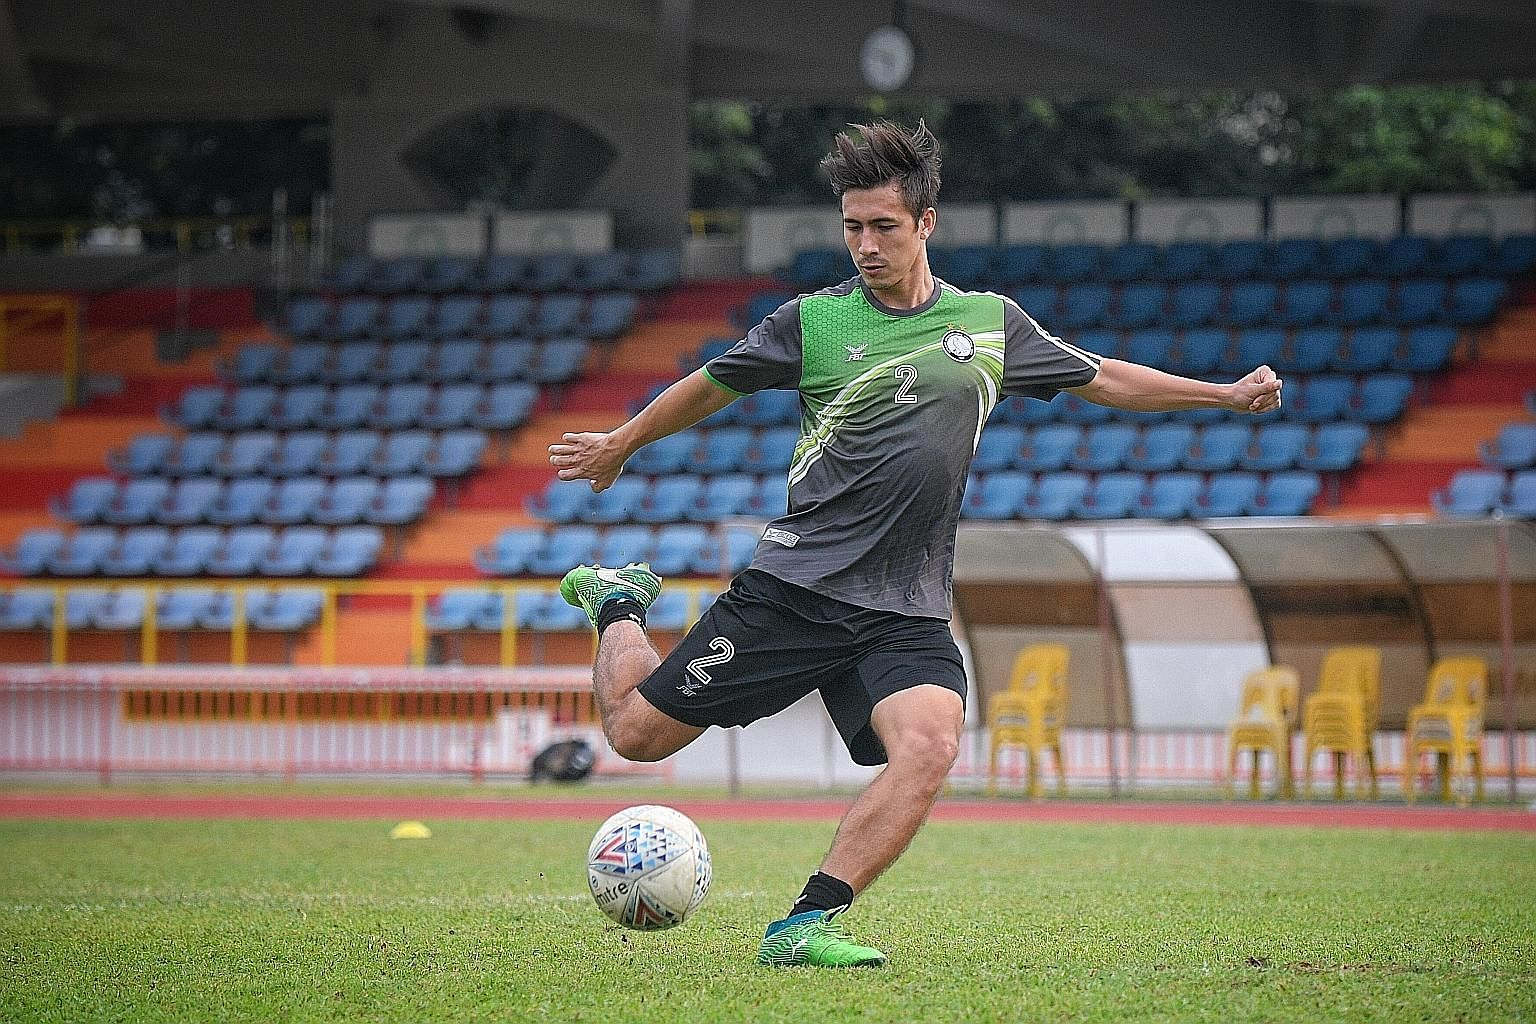 Geylang's Anders Aplin, 27, at training in Bedok Stadium on Monday. He is excited about the prospect of raising his playing standards.